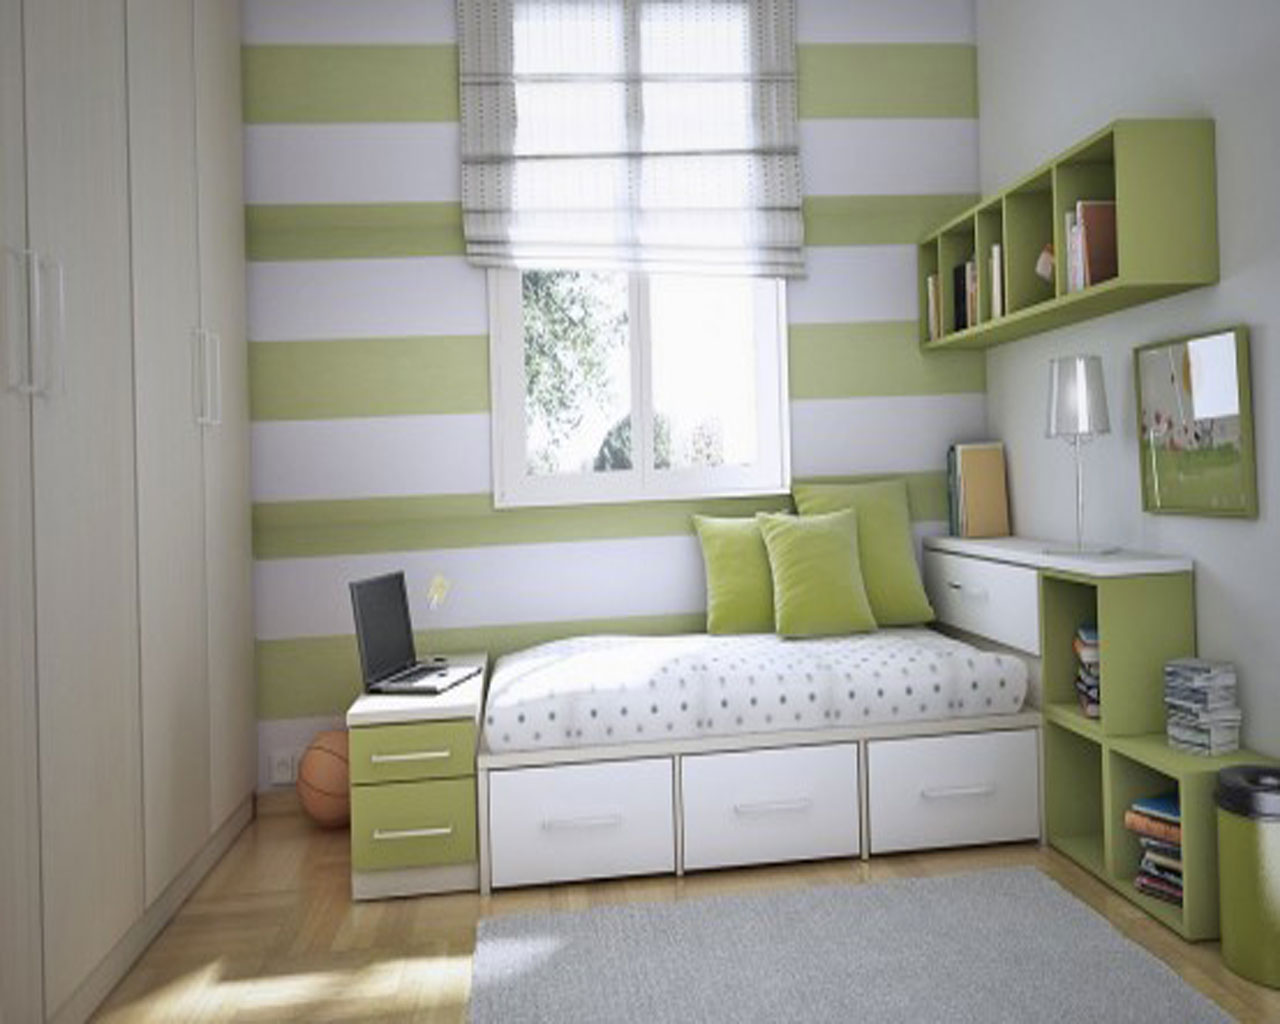 Best kids room design ideas times news uk Teenage room ideas small space